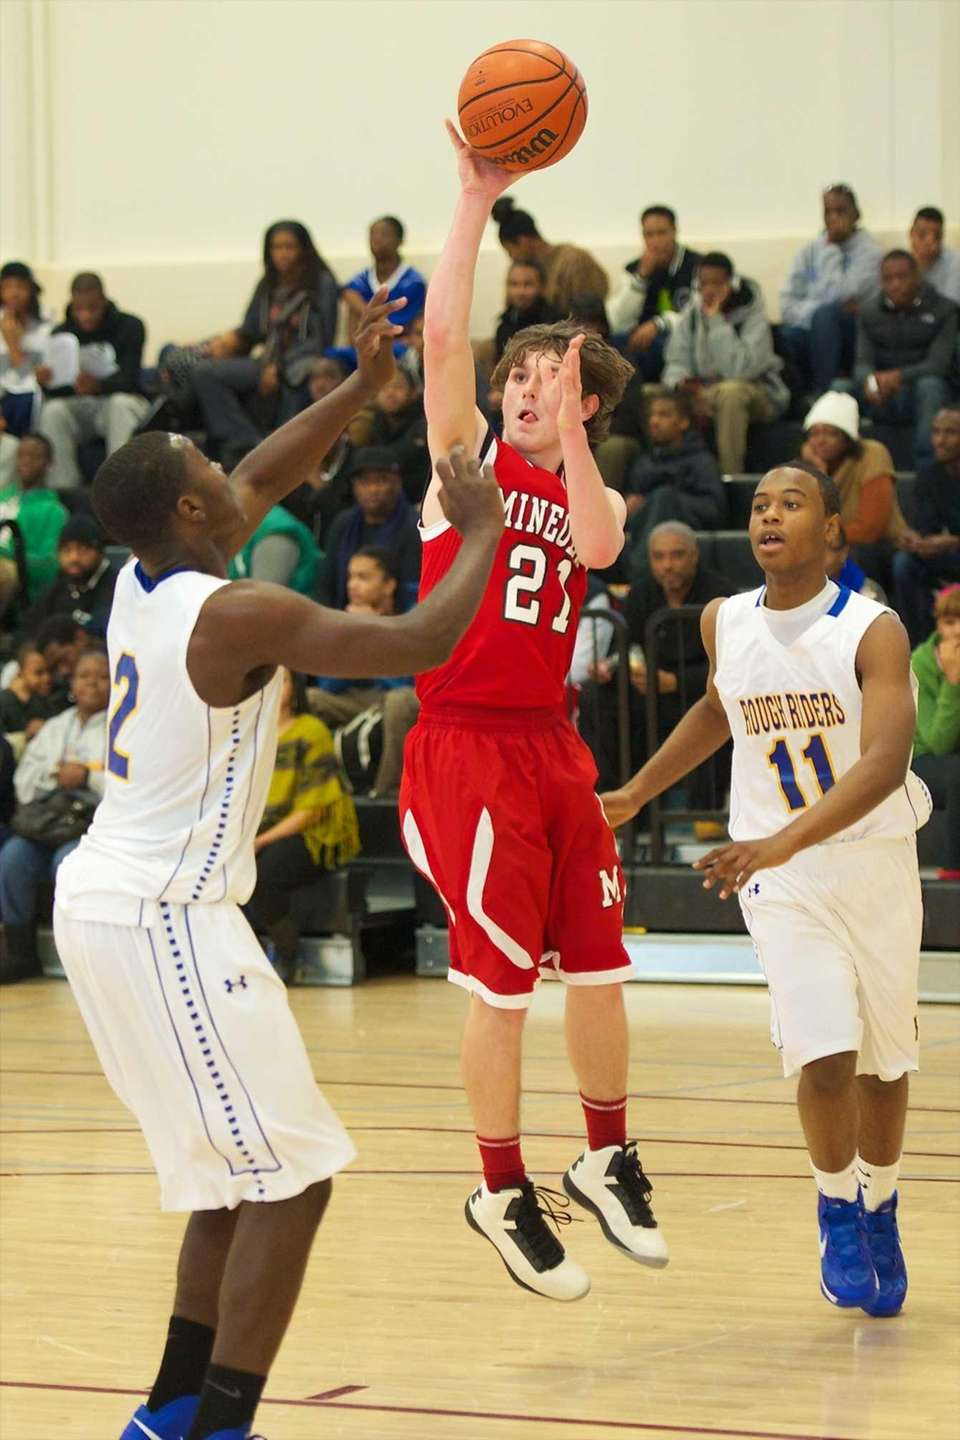 Mineola guard Brian Gaffney takes a jump shot